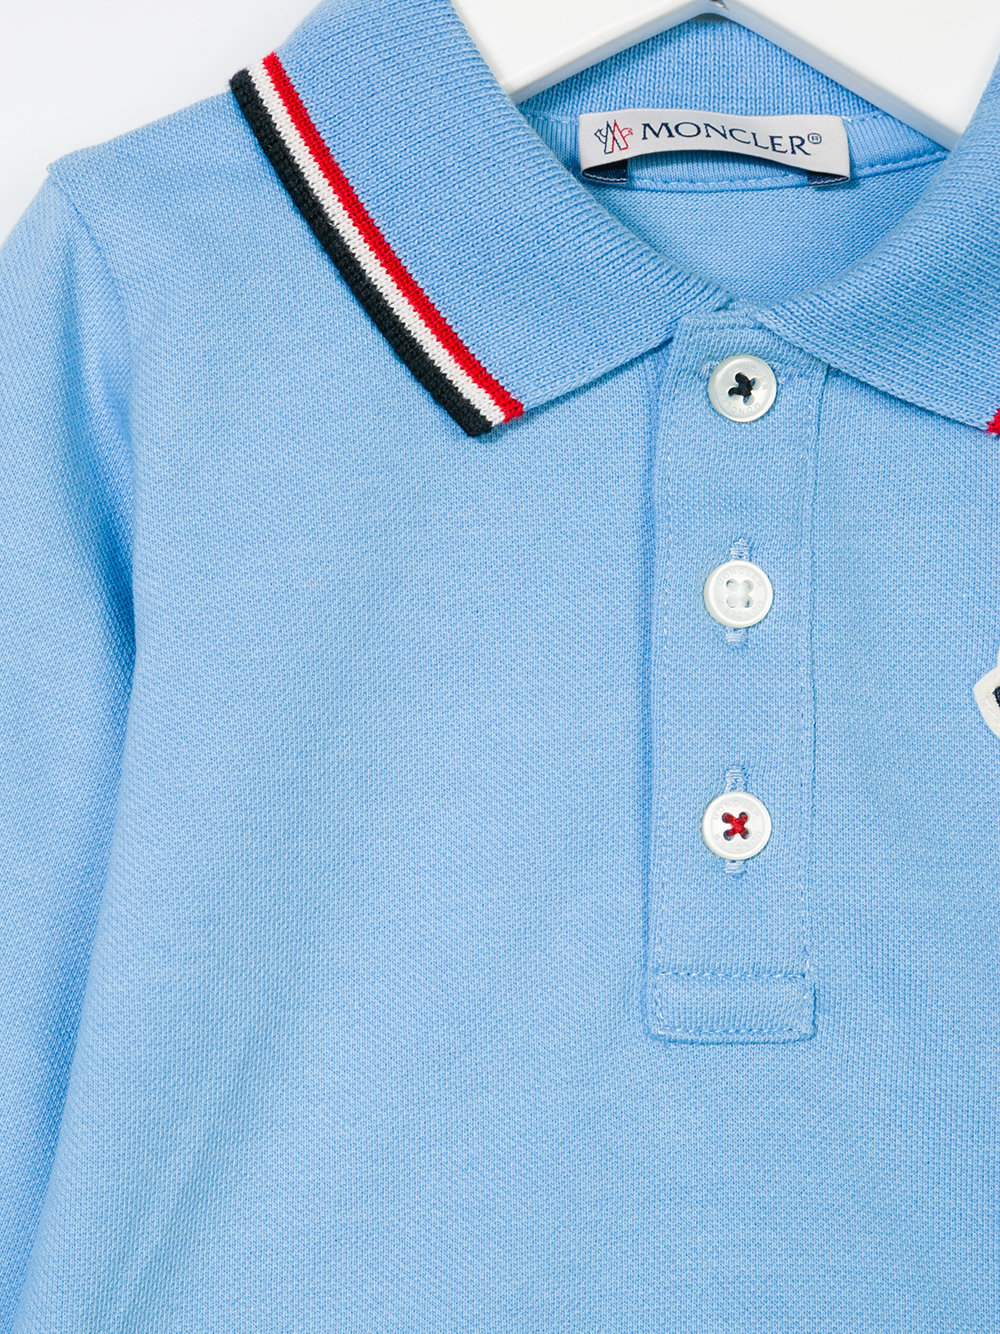 TOPセラー賞受賞!17AW┃MONCLER★0-36か月_POLO SHIRT_ブルー